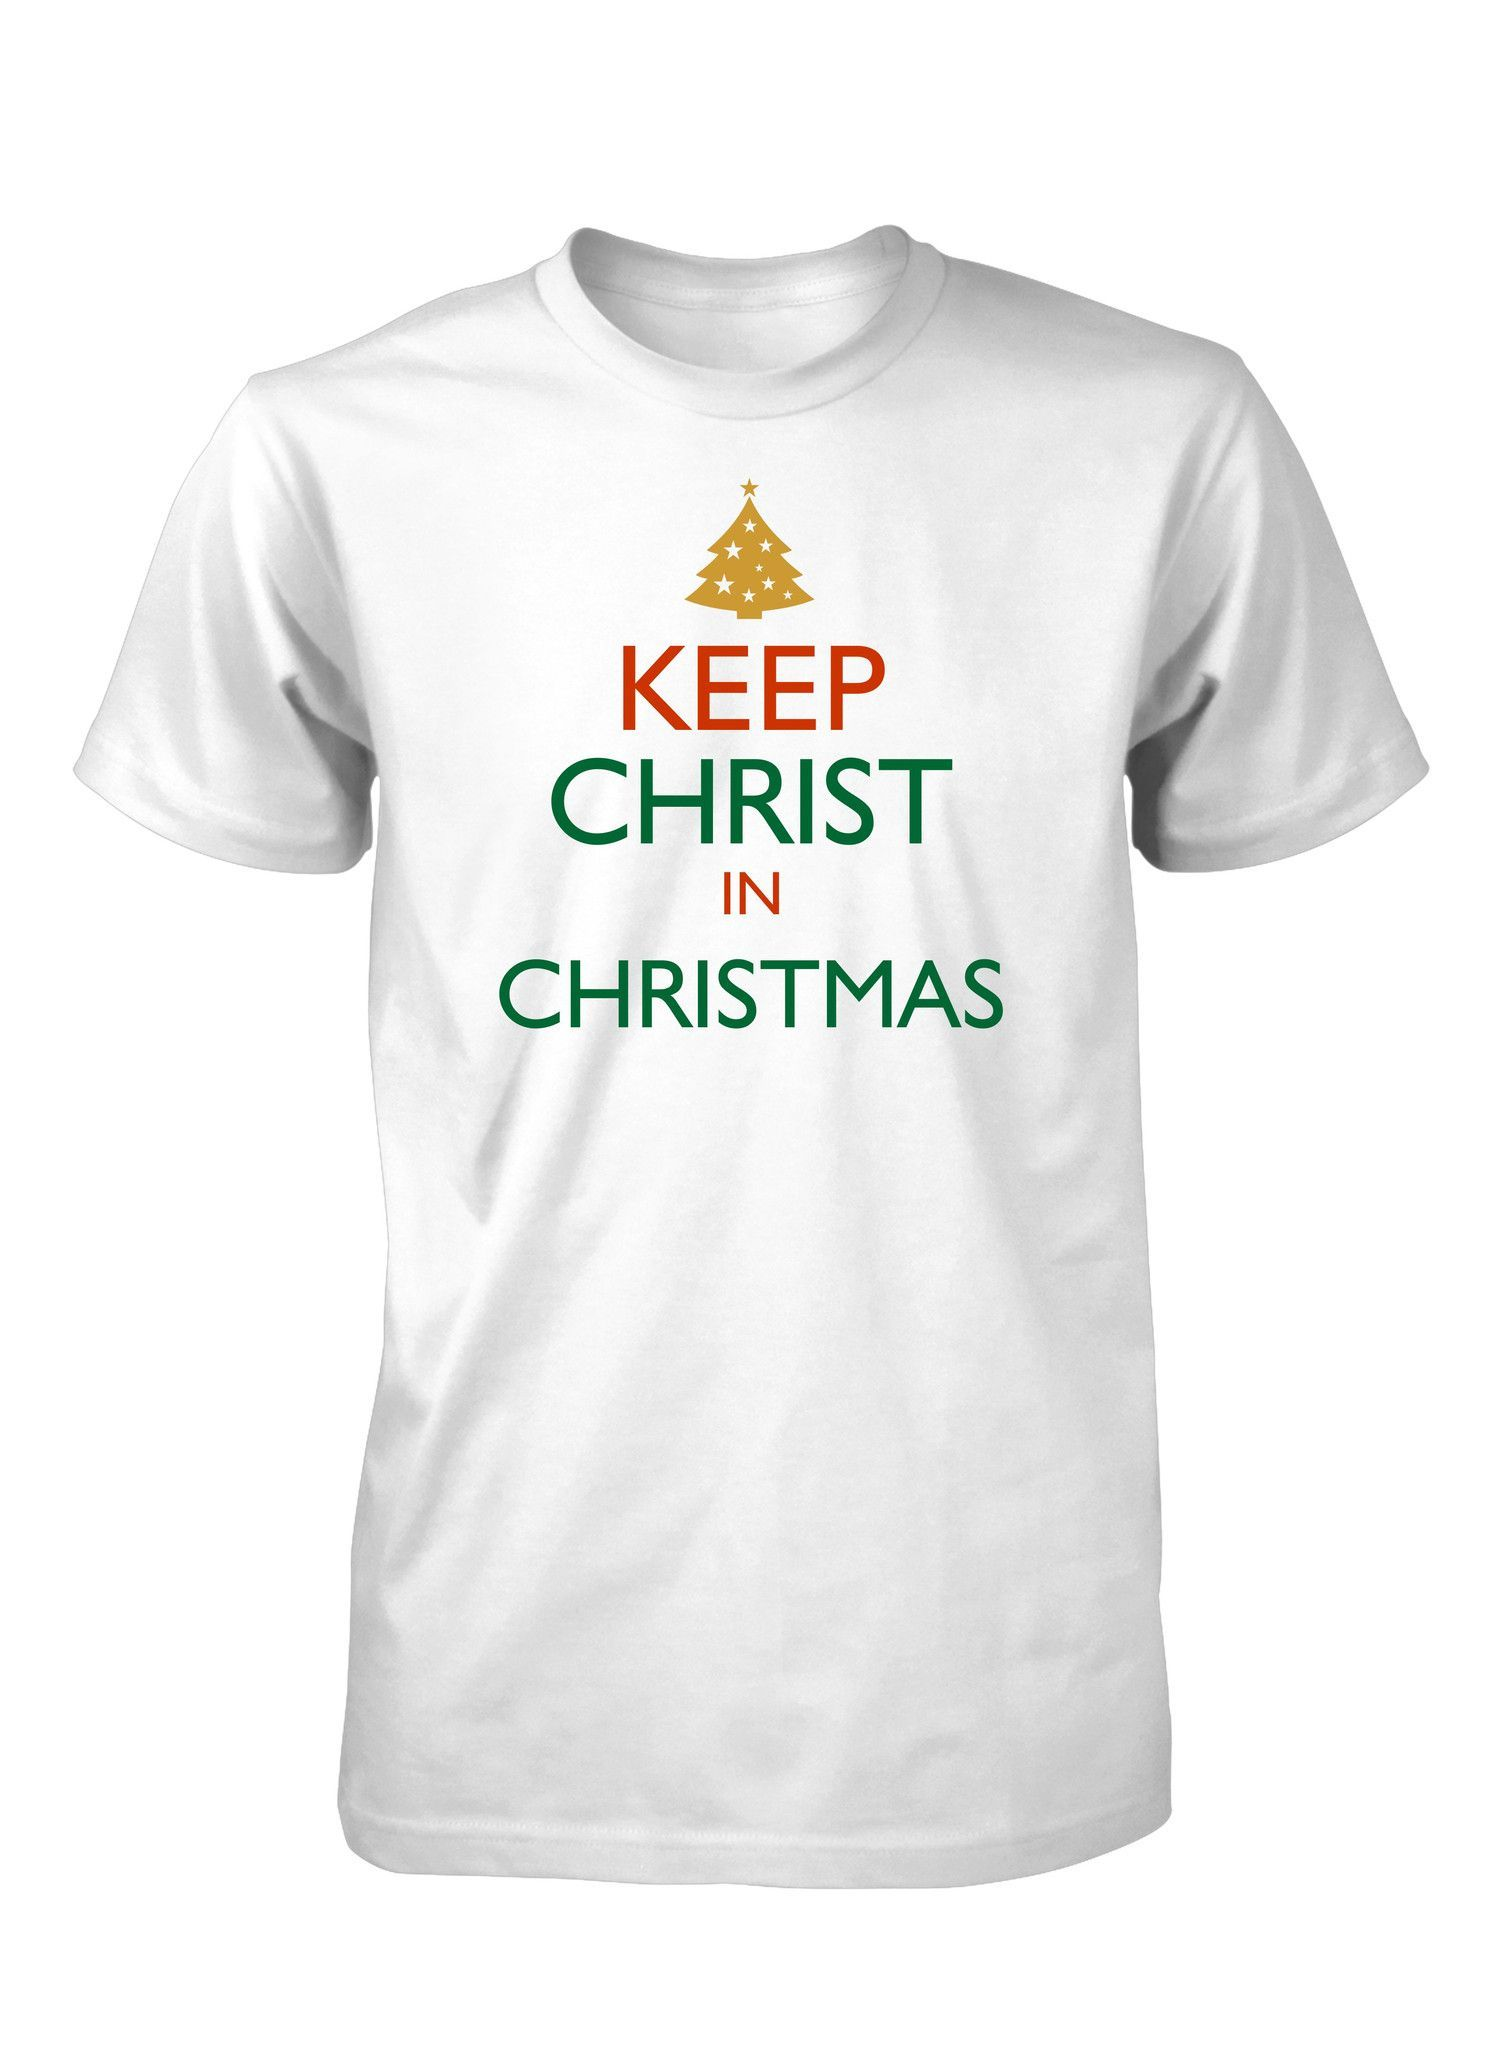 keep christ in christmas The phrase keep christ in christmas is a good way for jesus-followers to remember and live out the spirit of the season, but the slogan should never be used as a means to force others to do so no one has ever become a genuine follower of jesus through force.